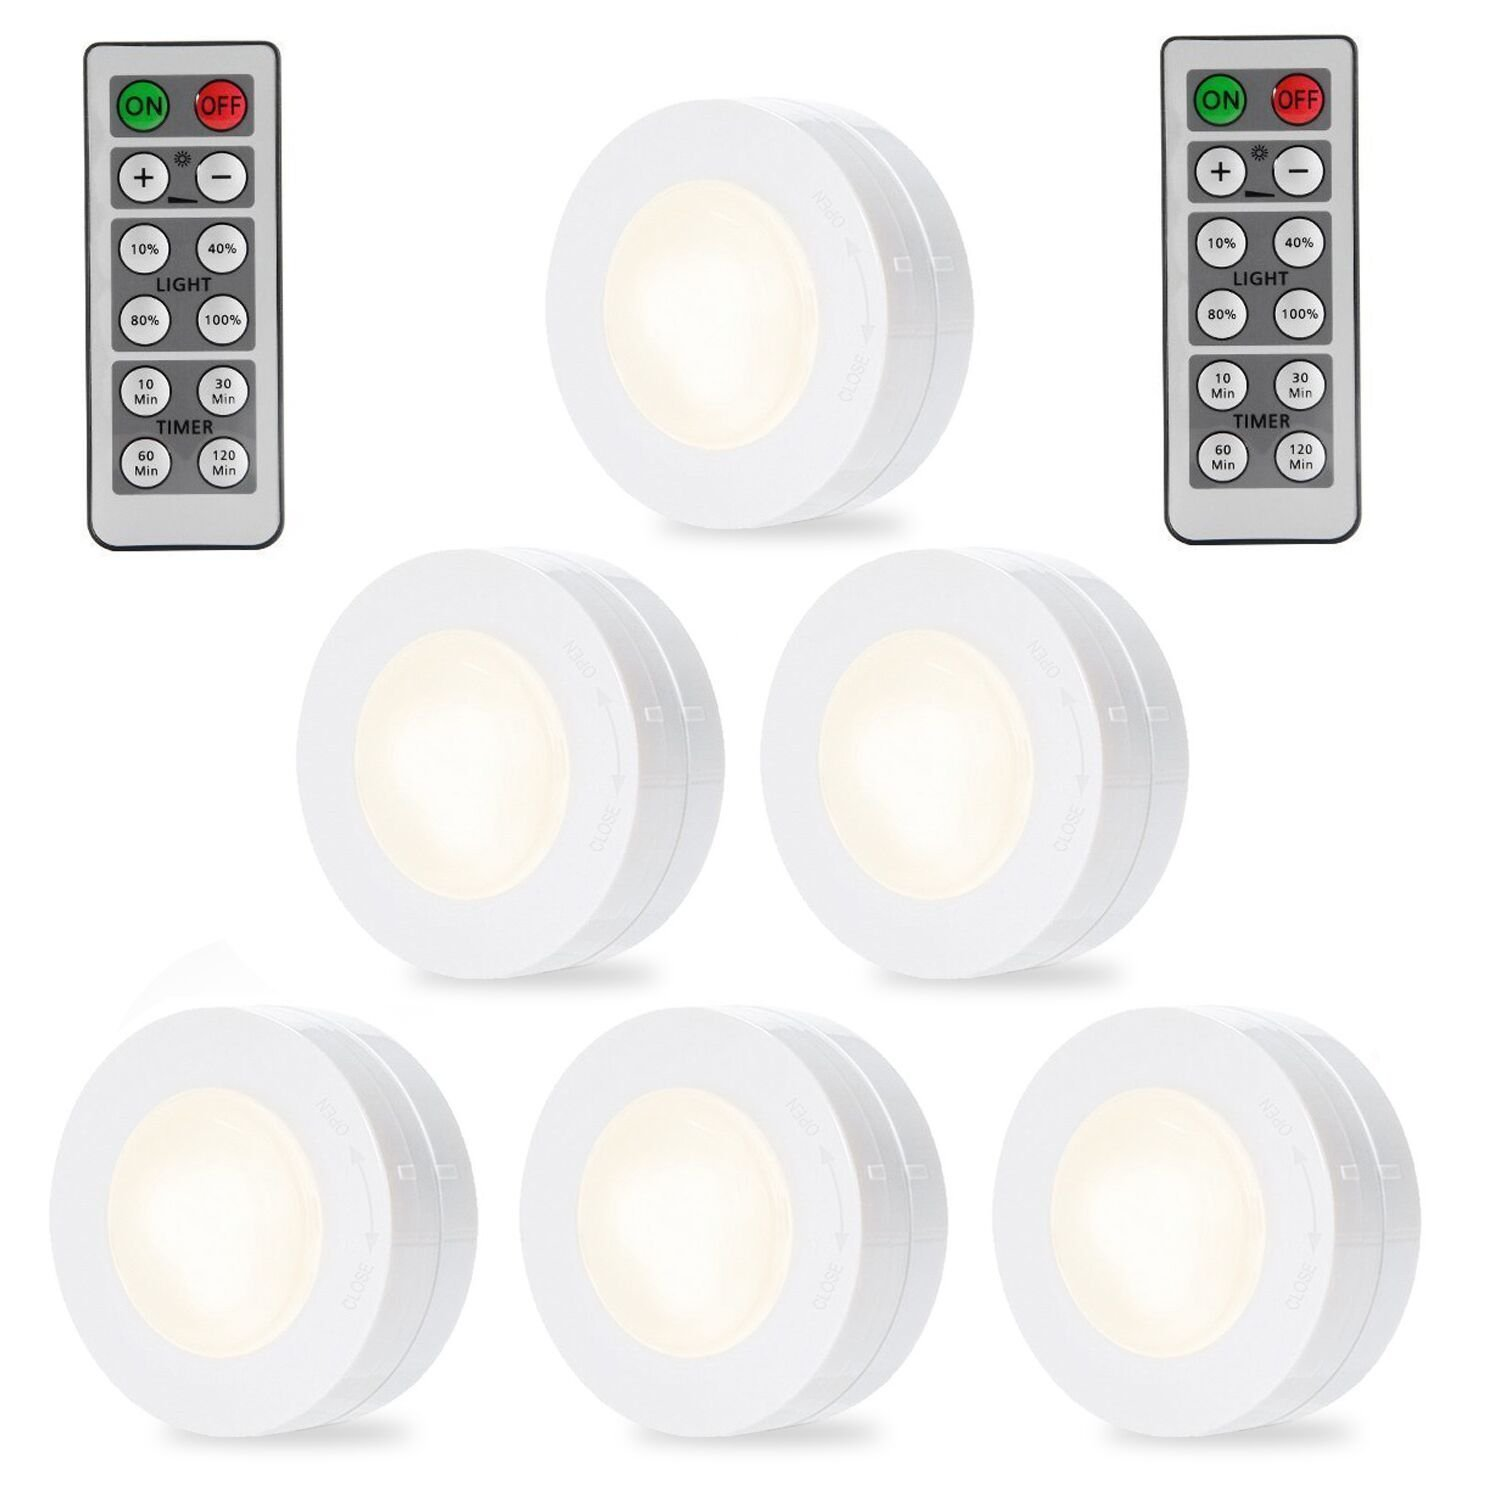 SOLLED Wireless LED Puck Lights, Kitchen Under Cabinet Lighting with Remote Control, Battery Powered Dimmable Closet Lights, 4000K Natural Light-6 Pack by SOLLED (Image #1)